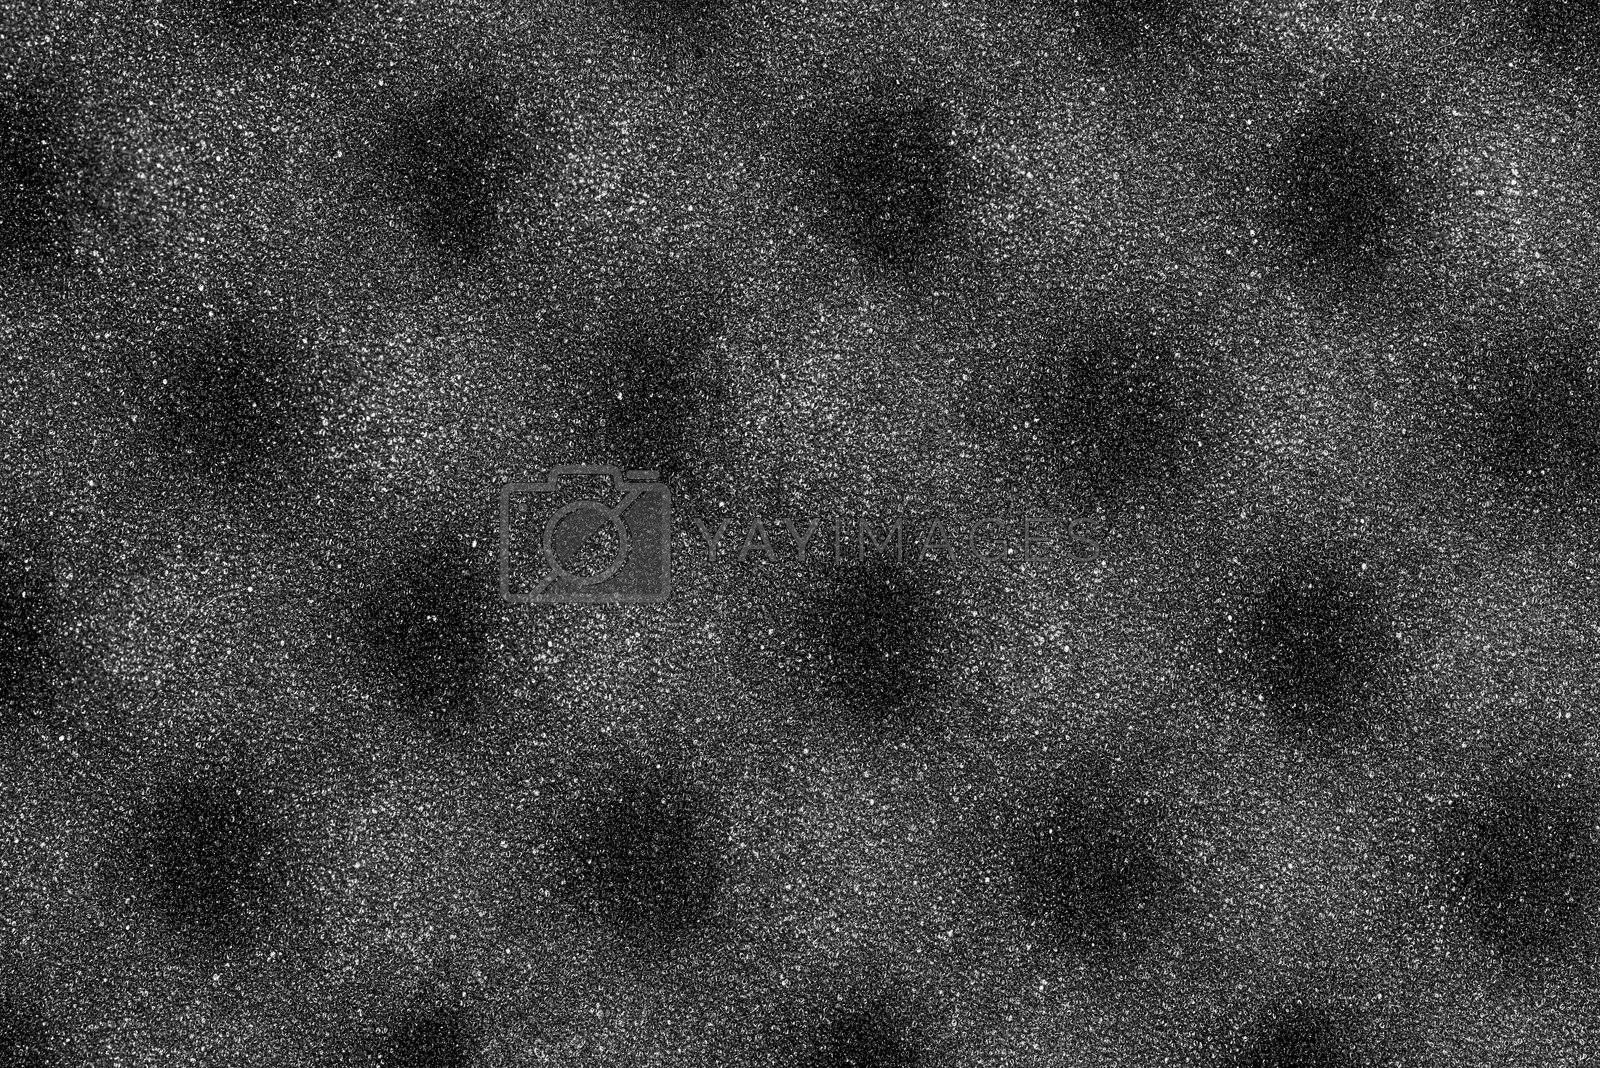 Foam background texture made with egg crate foam